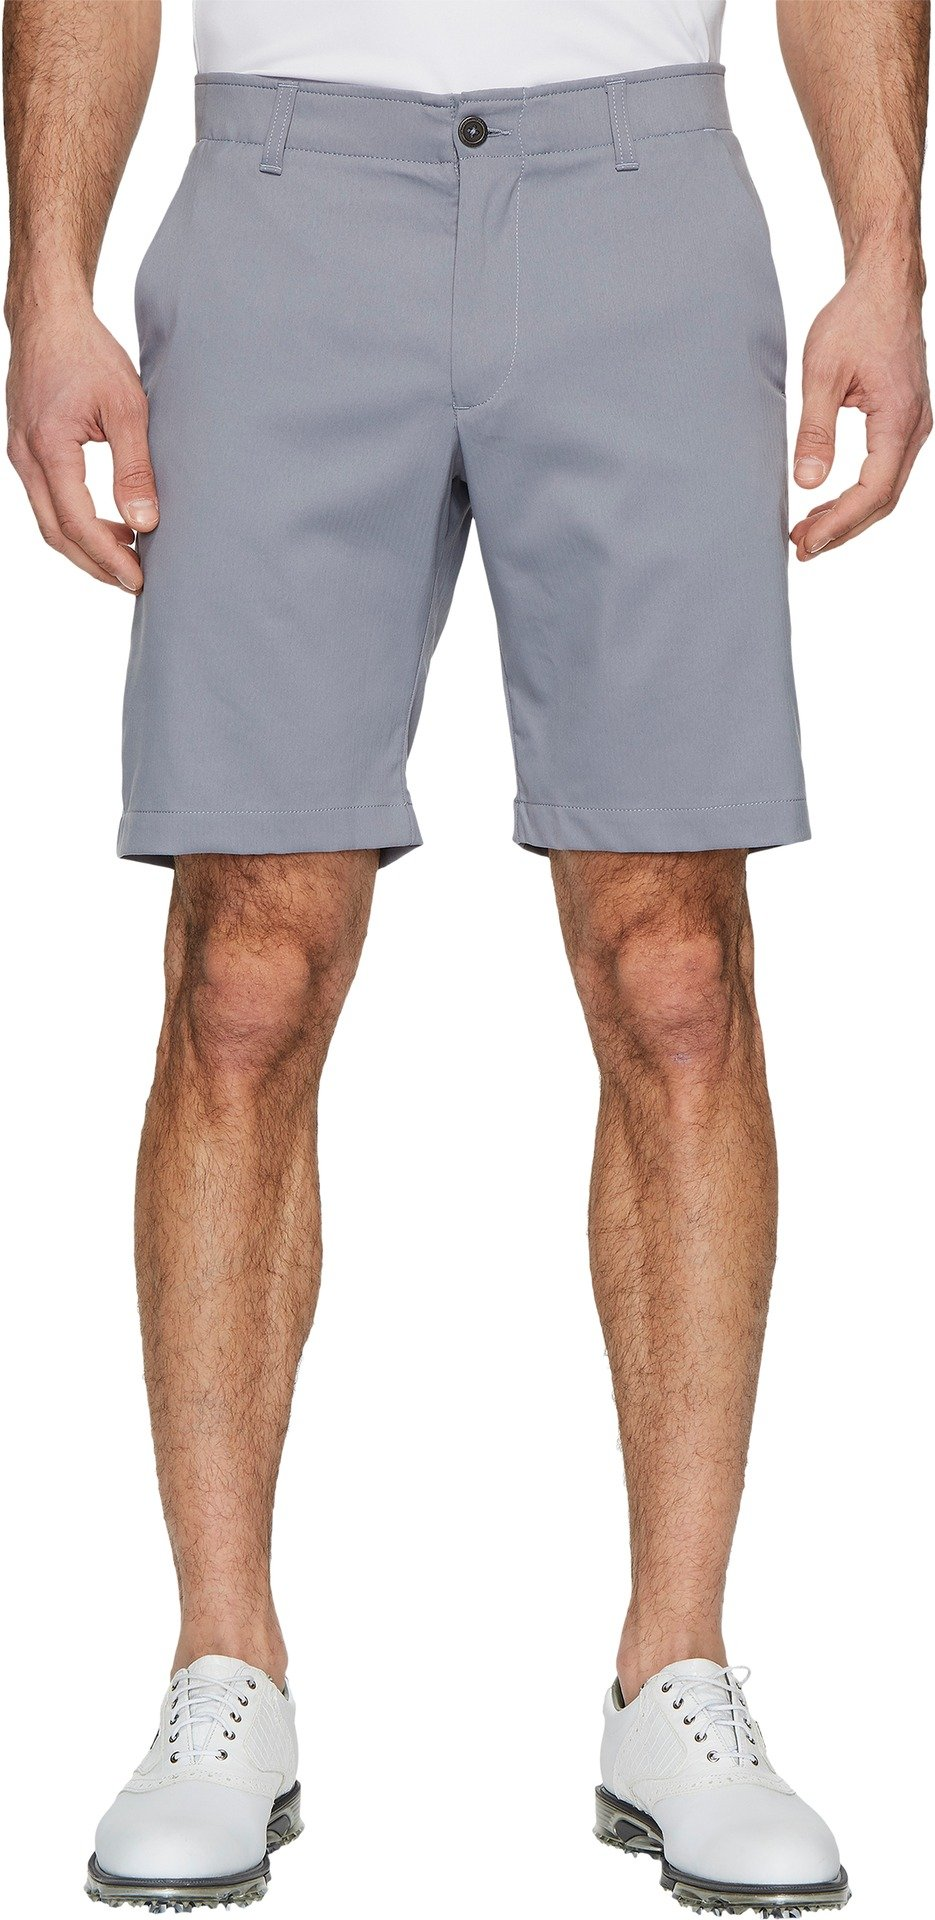 Under Armour Men's Showdown Golf Shorts, Zinc Gray (513)/Zinc Gray, 36 by Under Armour